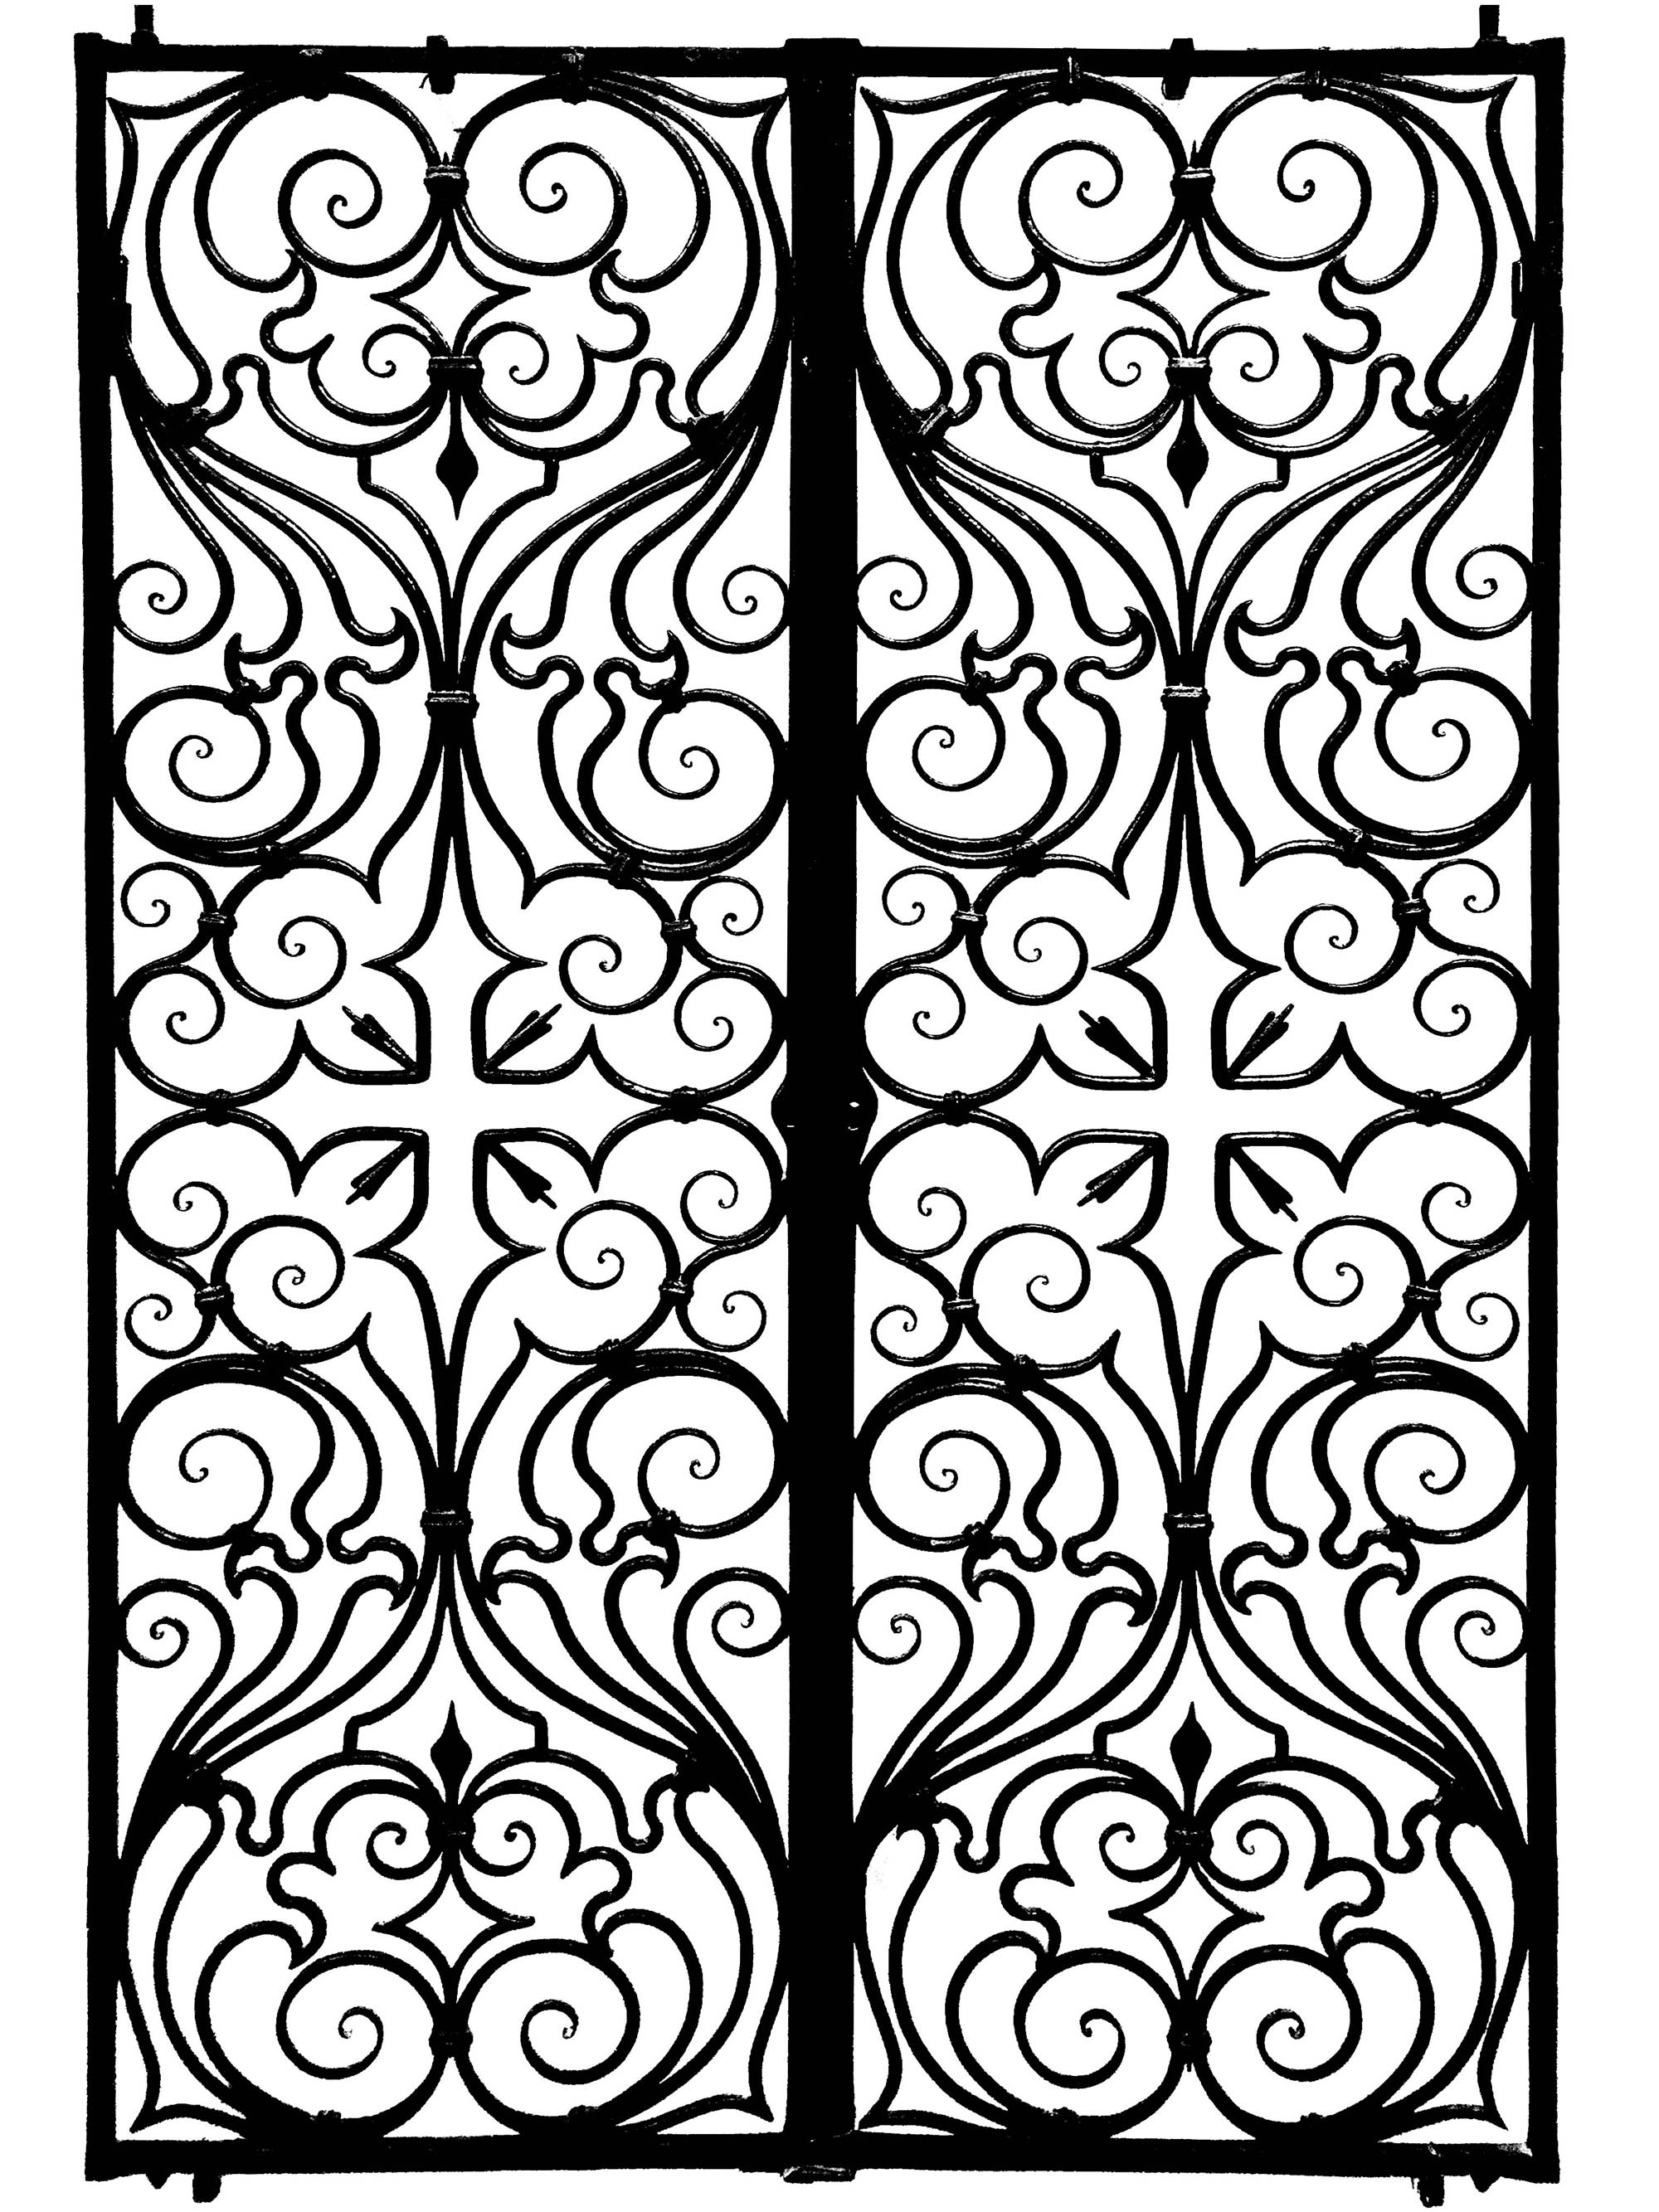 Coloring page created from a picture of a church gate (Italy, 17th century)